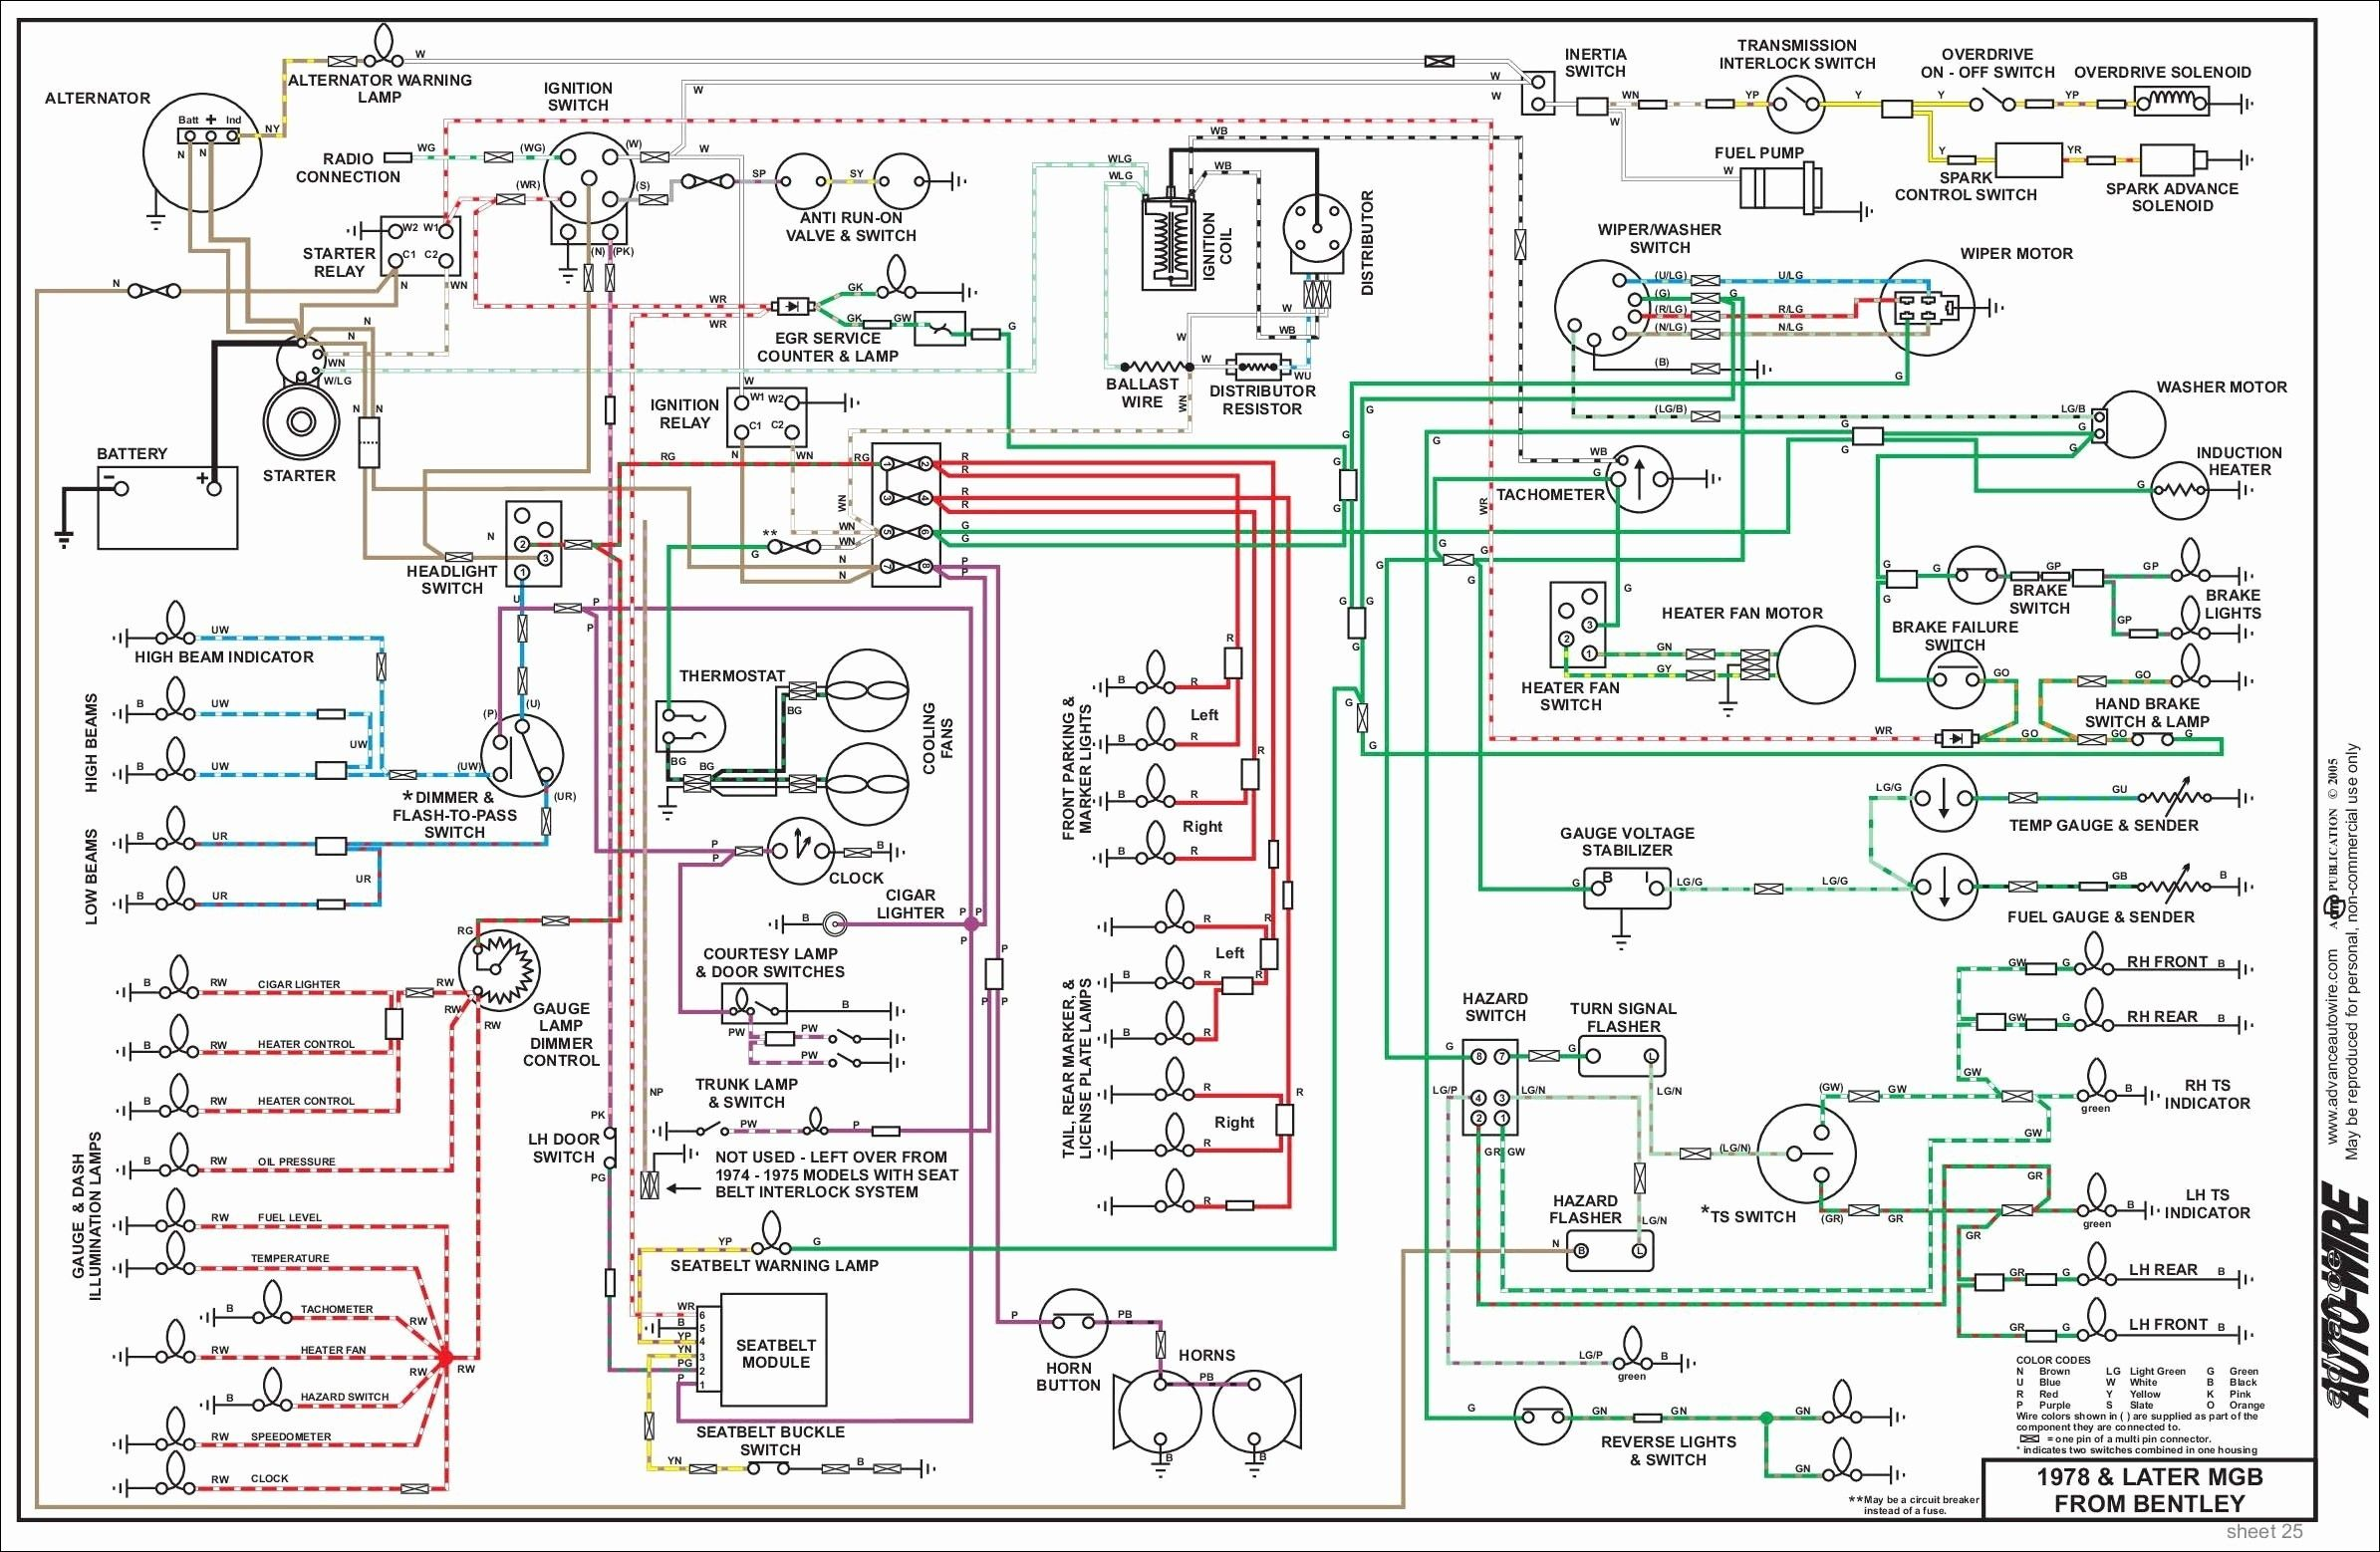 Diagramsample Diagramformats Diagramtemplate Ceiling Fan Wiring Ceiling Fan Switch Diagram